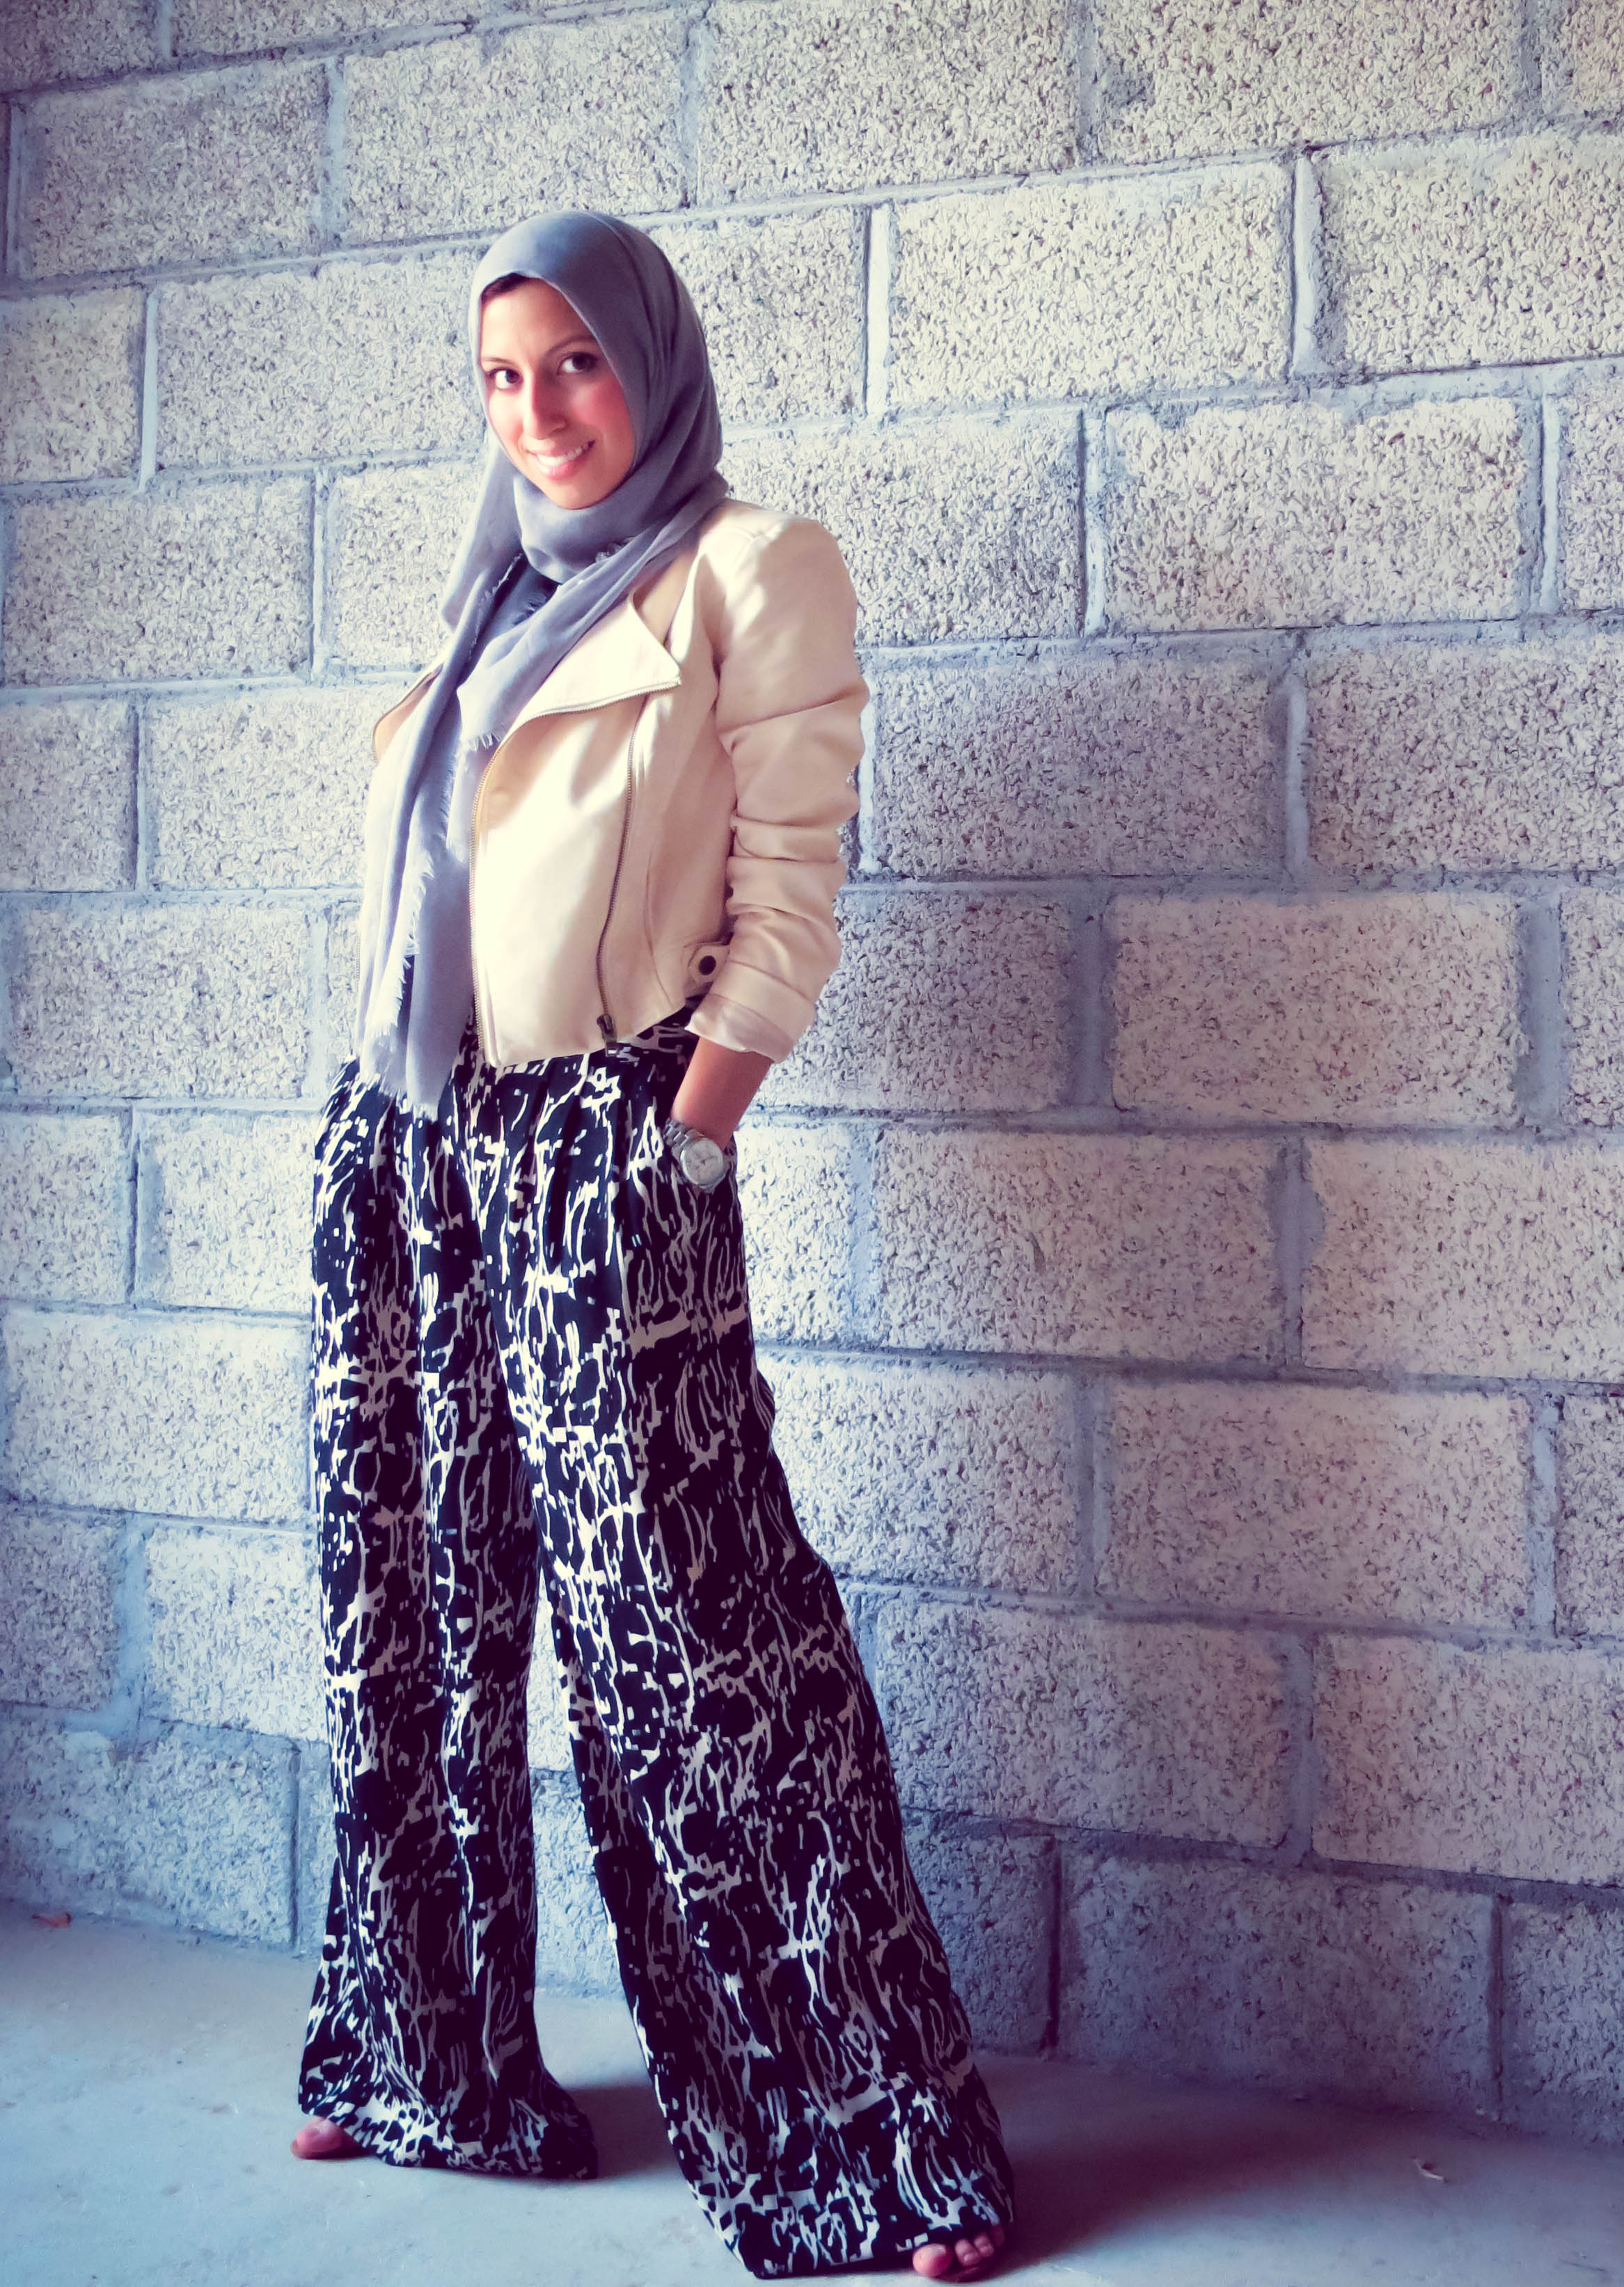 Leather jacket hijab - I Recently Scored This Blush Pink Biker Jacket And Knew The First Thing I Wanted To Pair It With Was My Palazzo Pants Along With Everything Else In My